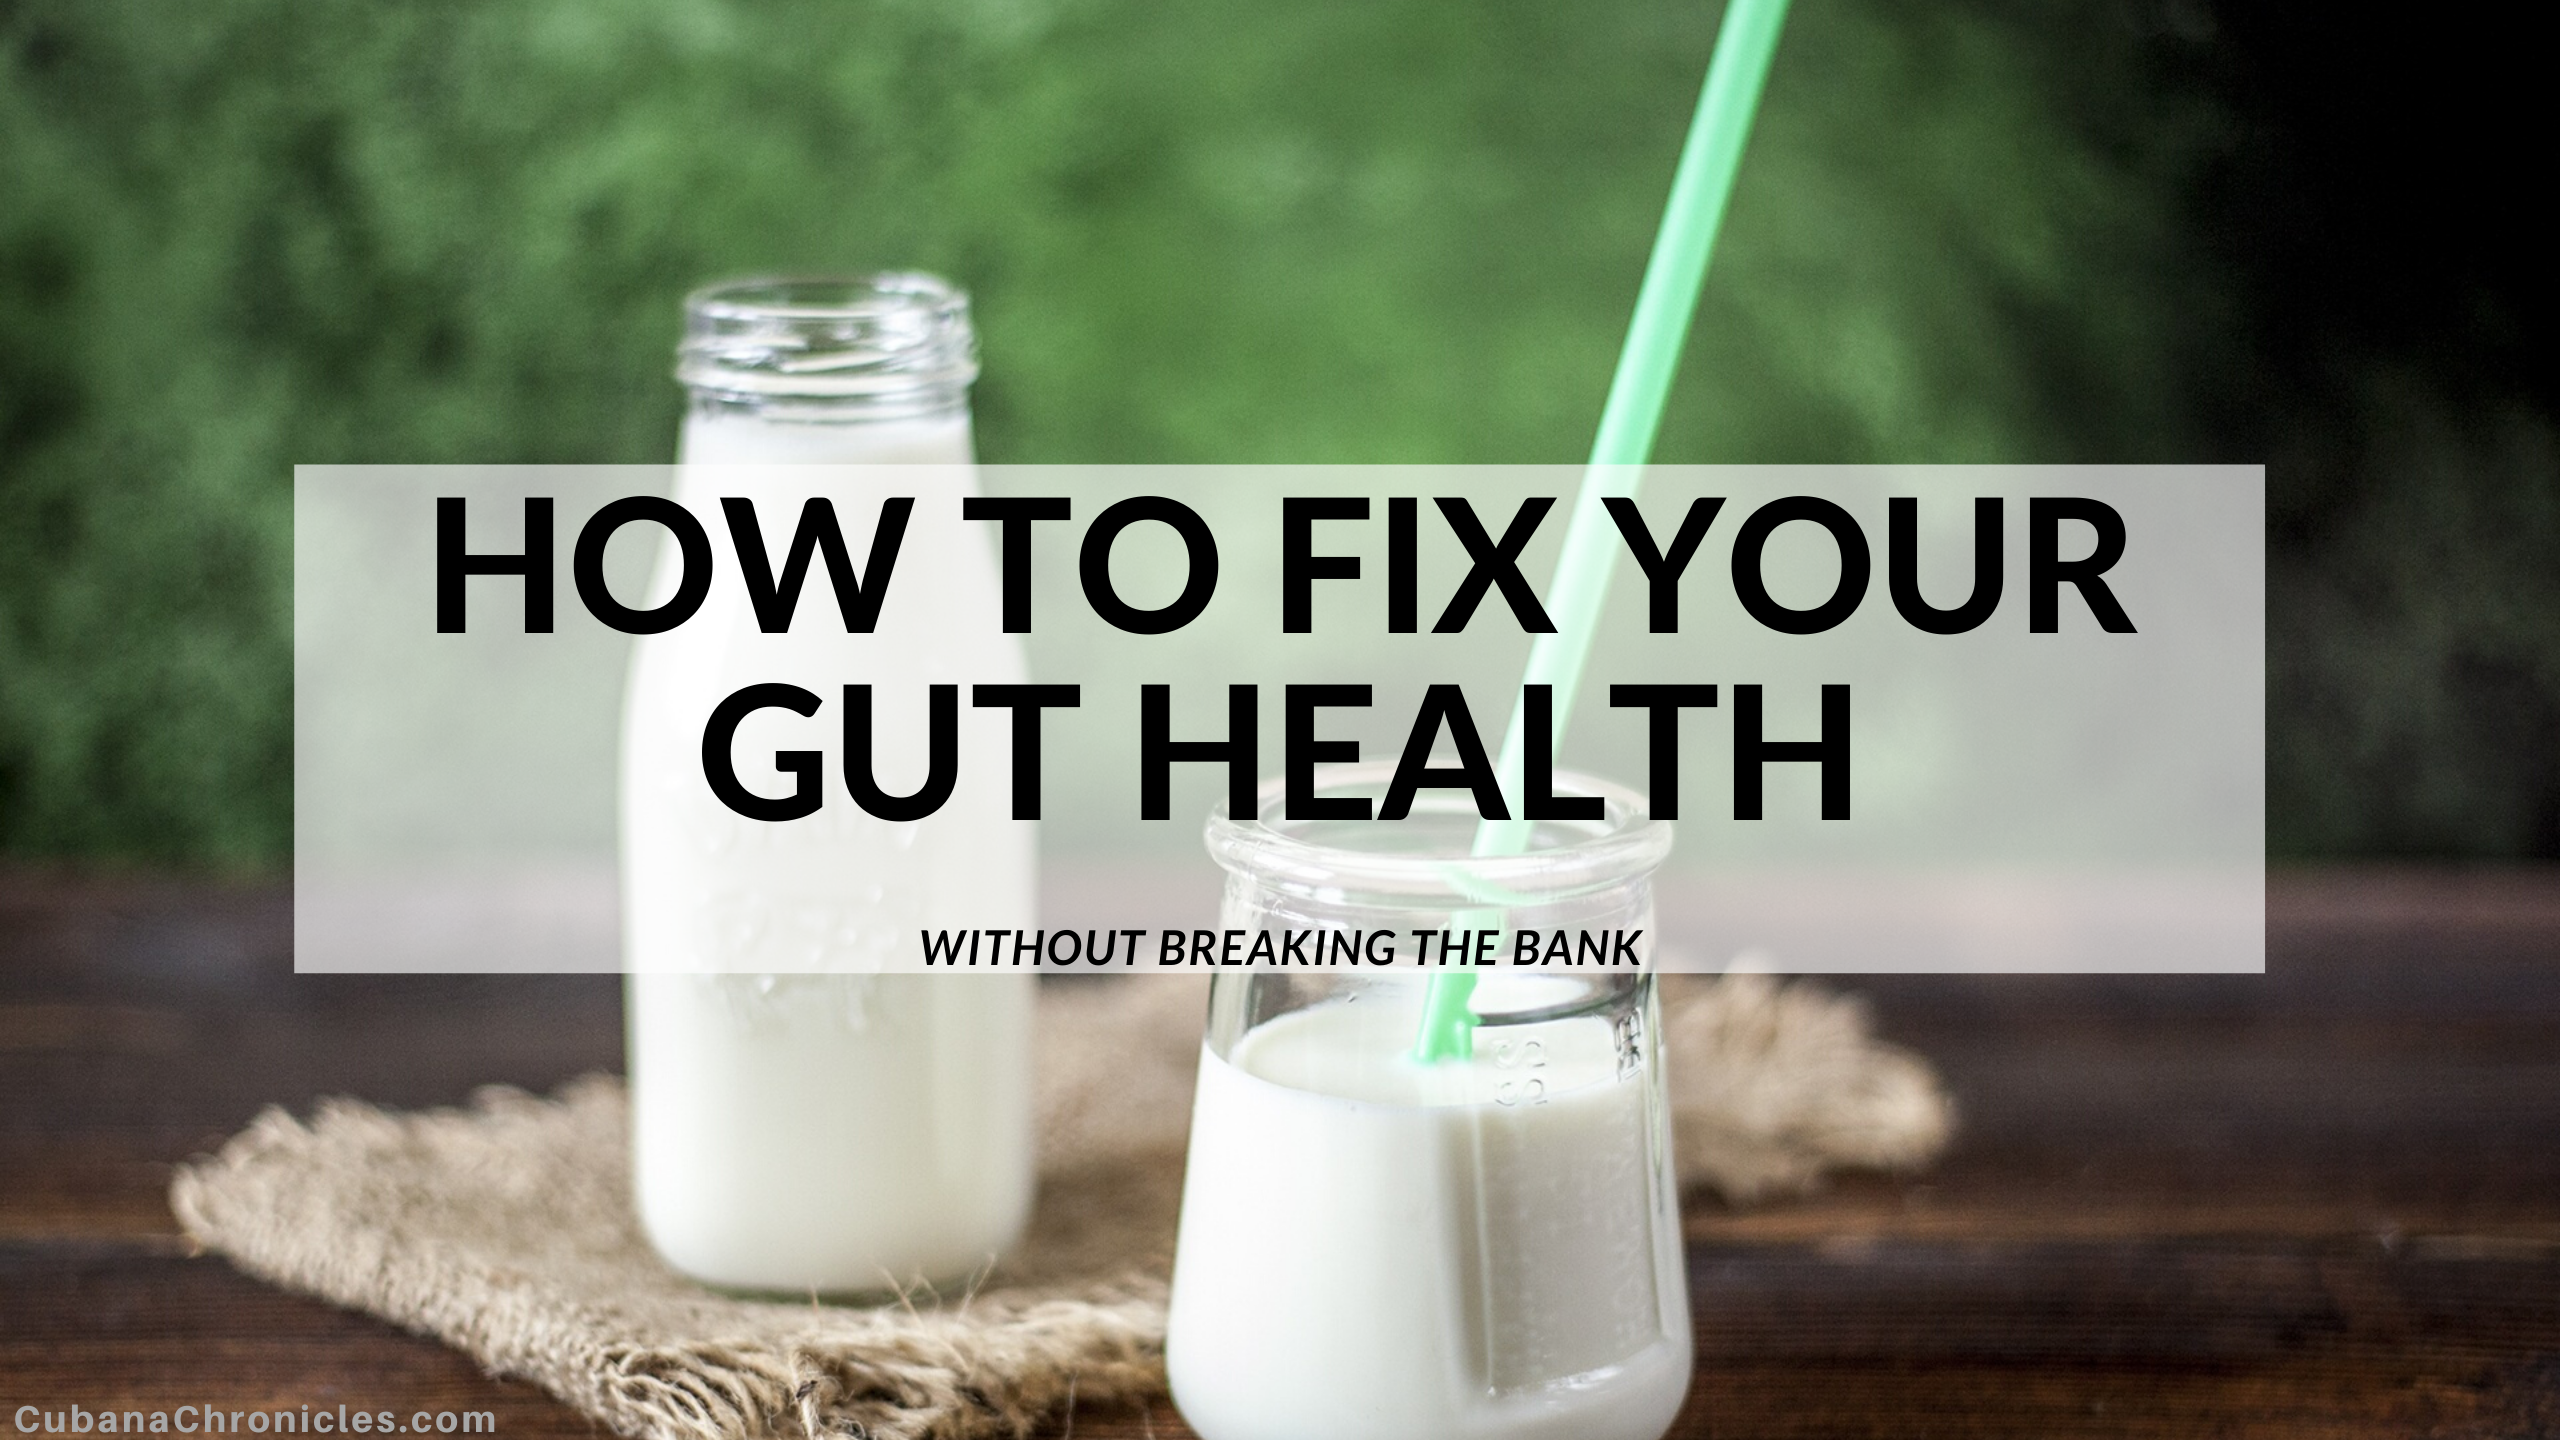 Cheaply Fix Your Gut Health Today